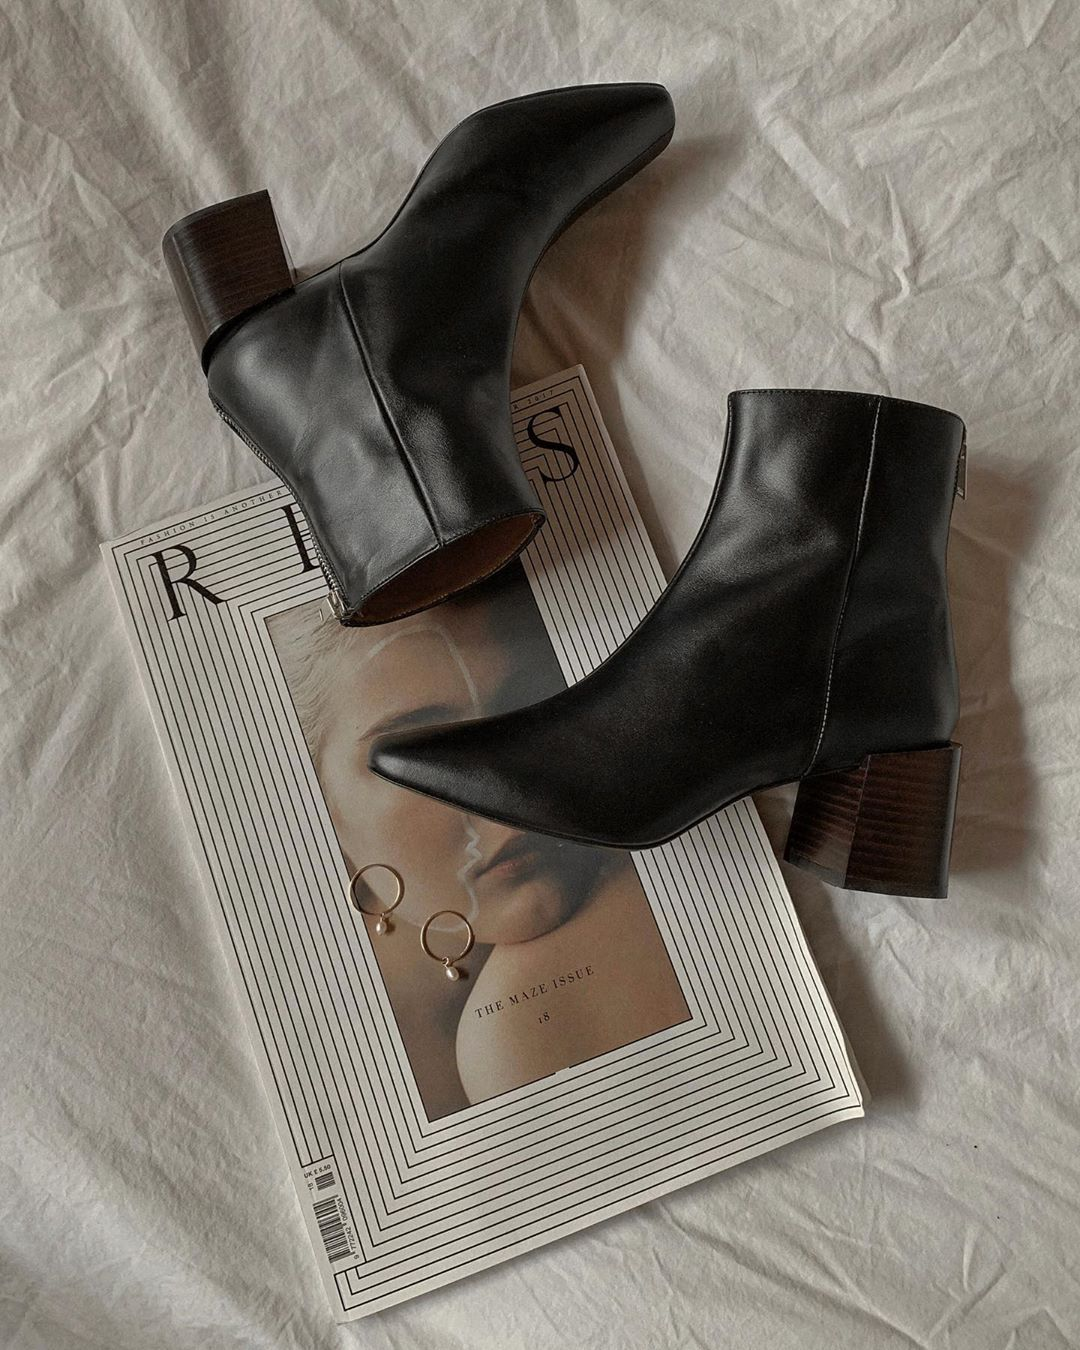 472f8d48f52f Black leather boots. Block heel ankle boots. IG   GEMARY